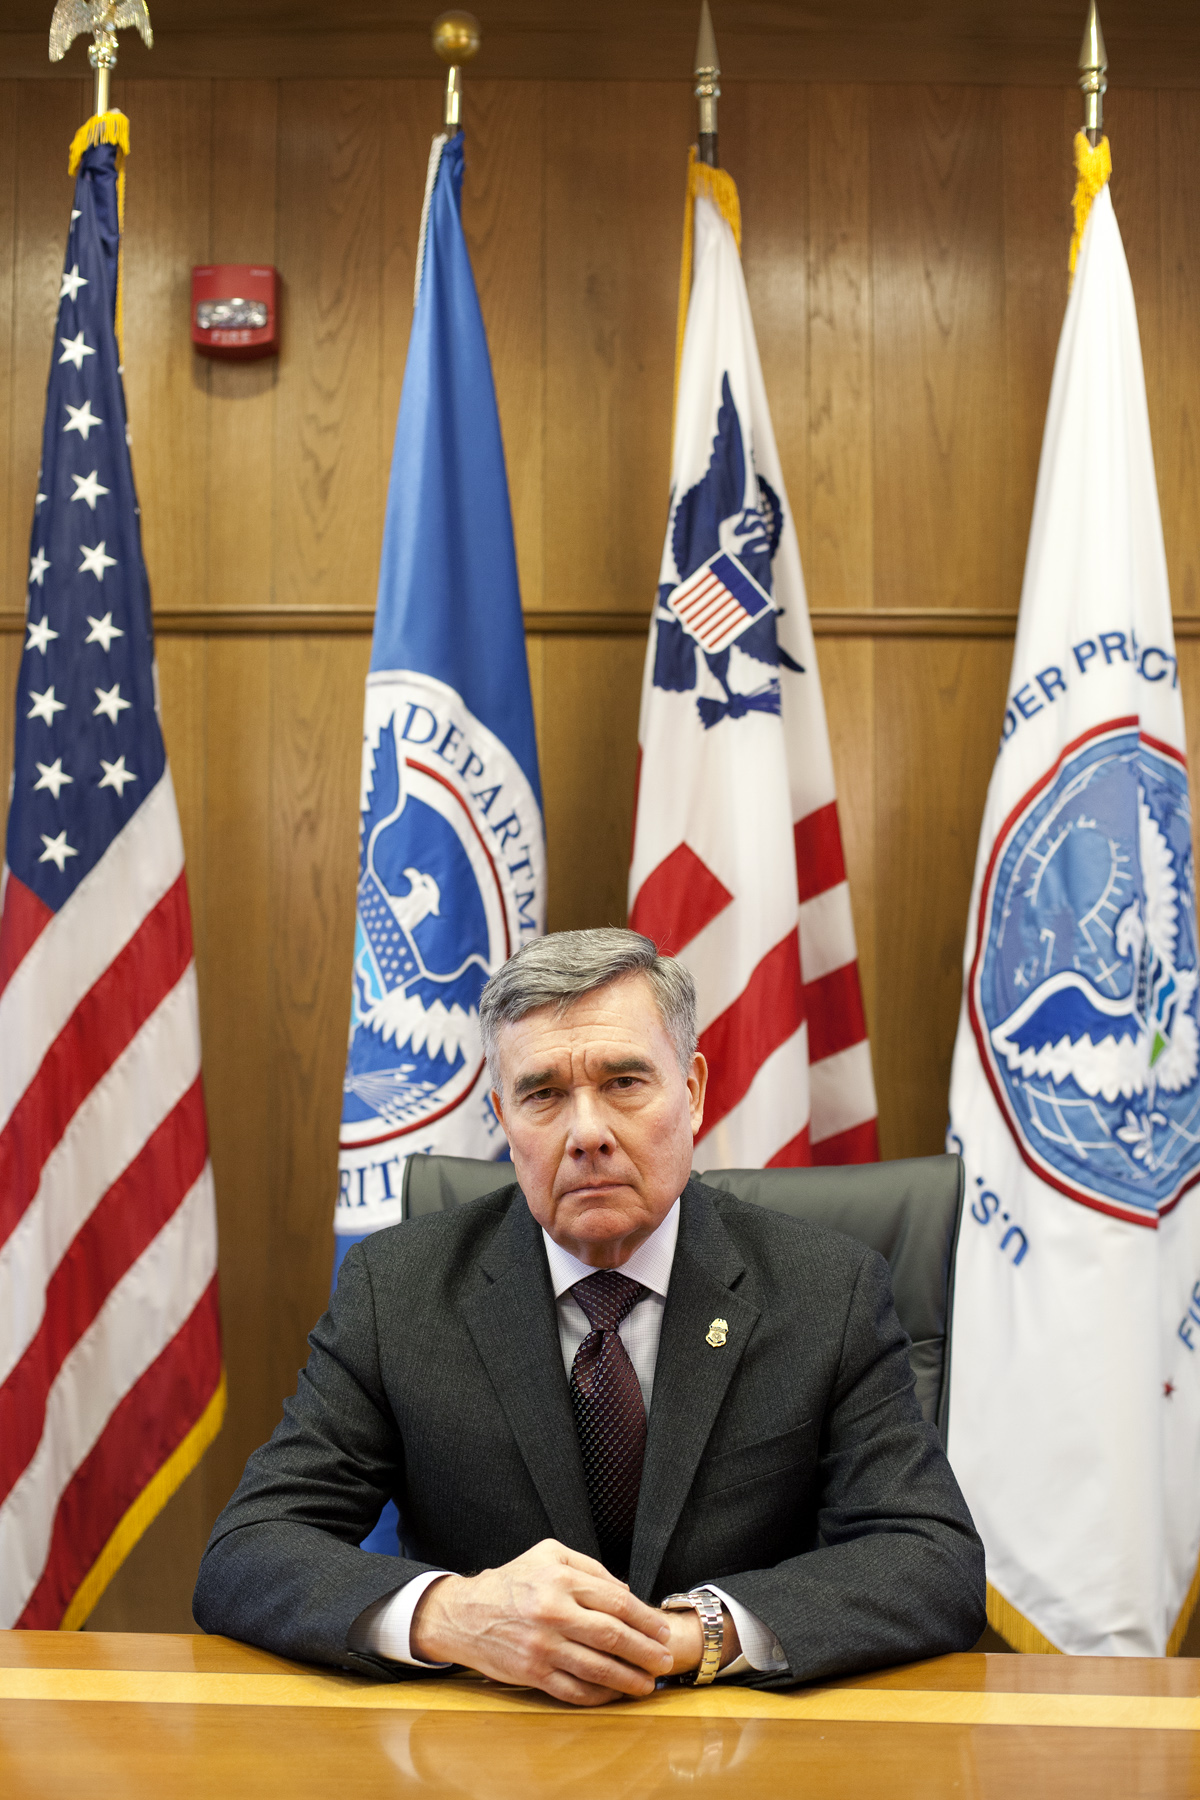 Gil Kerlikowske, Commissioner of U.S. Customs and Border Protection